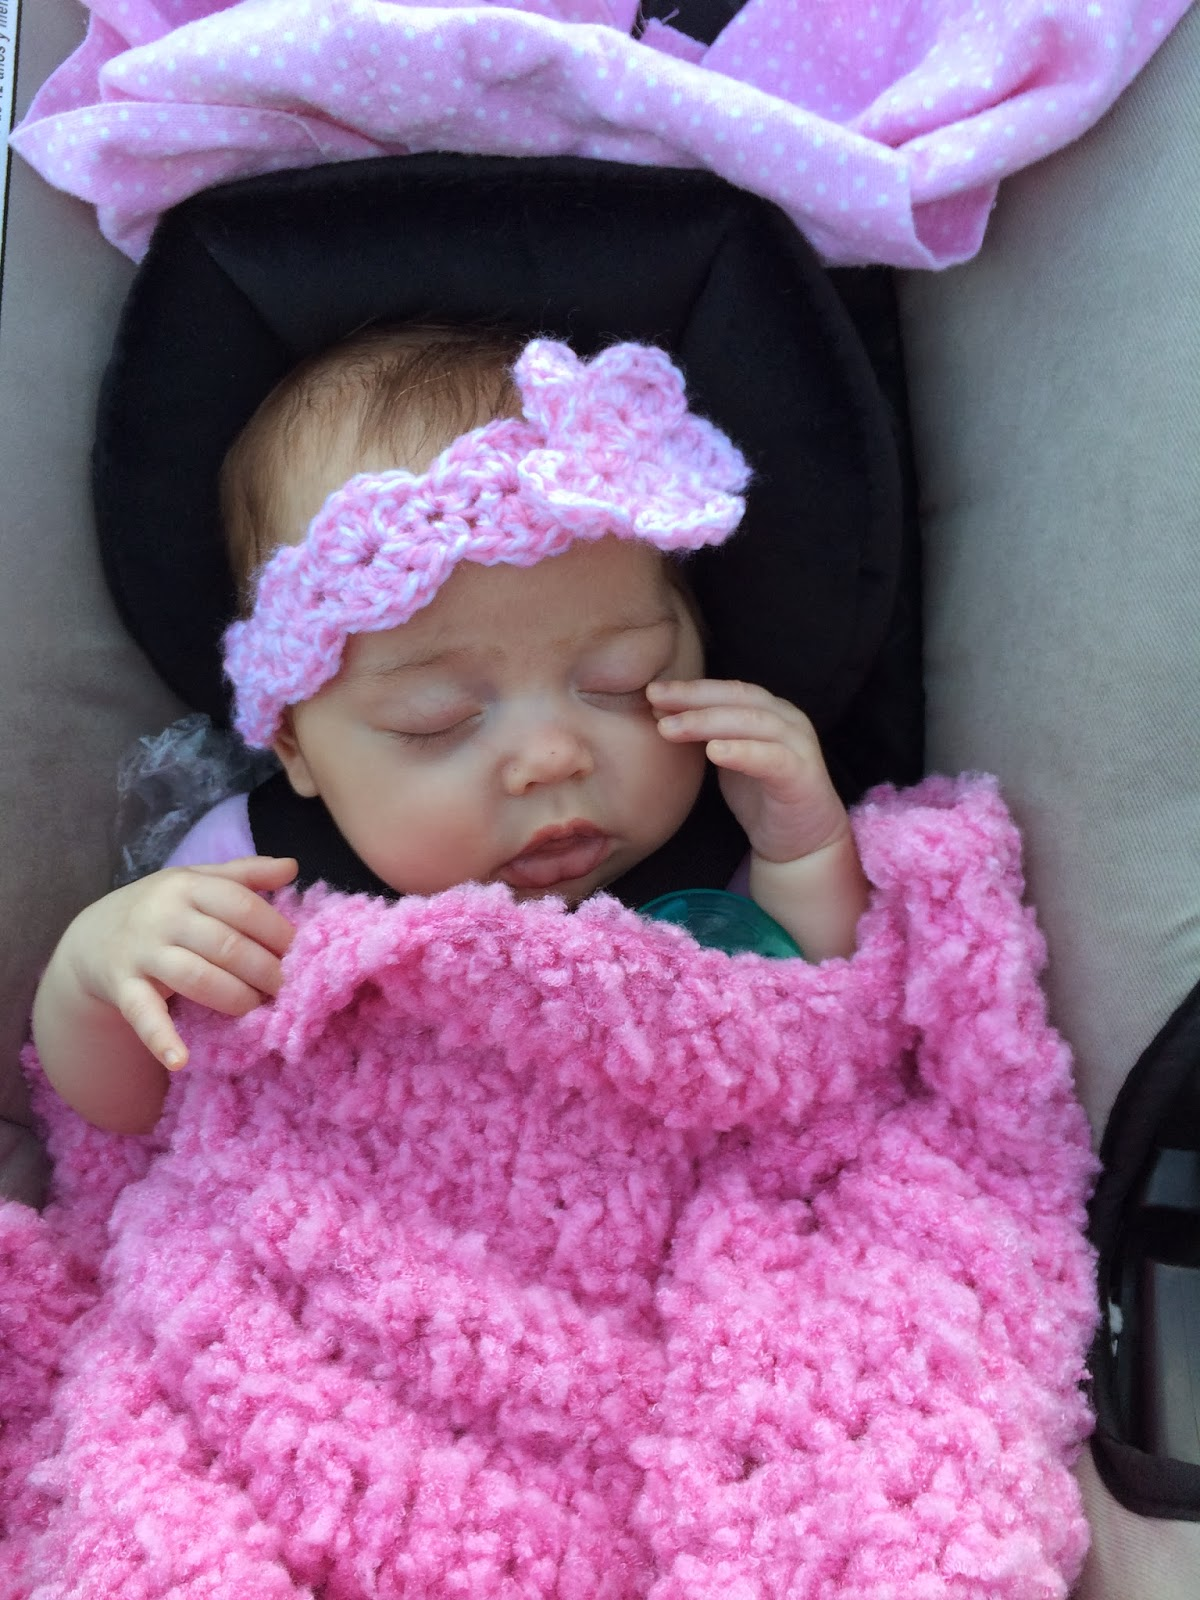 Free crochet patterns for baby headbands with flower dancox for not my nanas crochet crochet baby shells and flower bankloansurffo Image collections